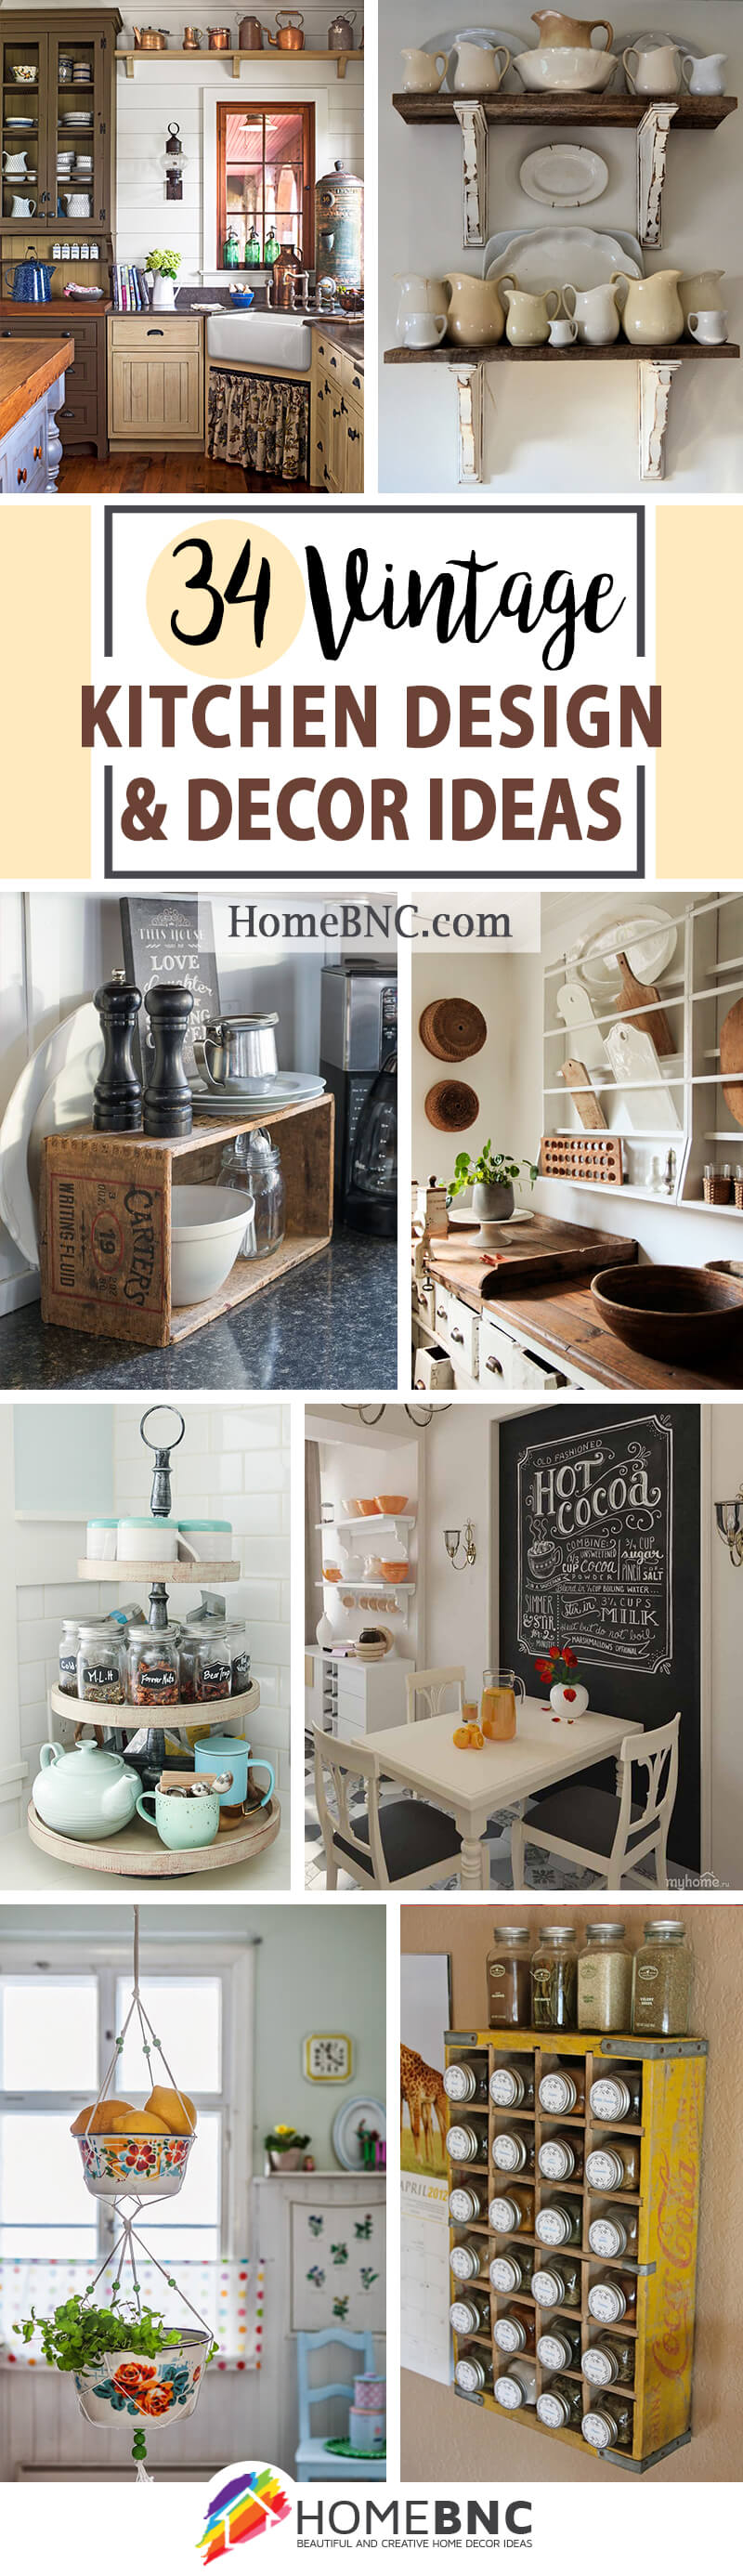 34 Best Vintage Kitchen Decor Ideas And Designs For 2020